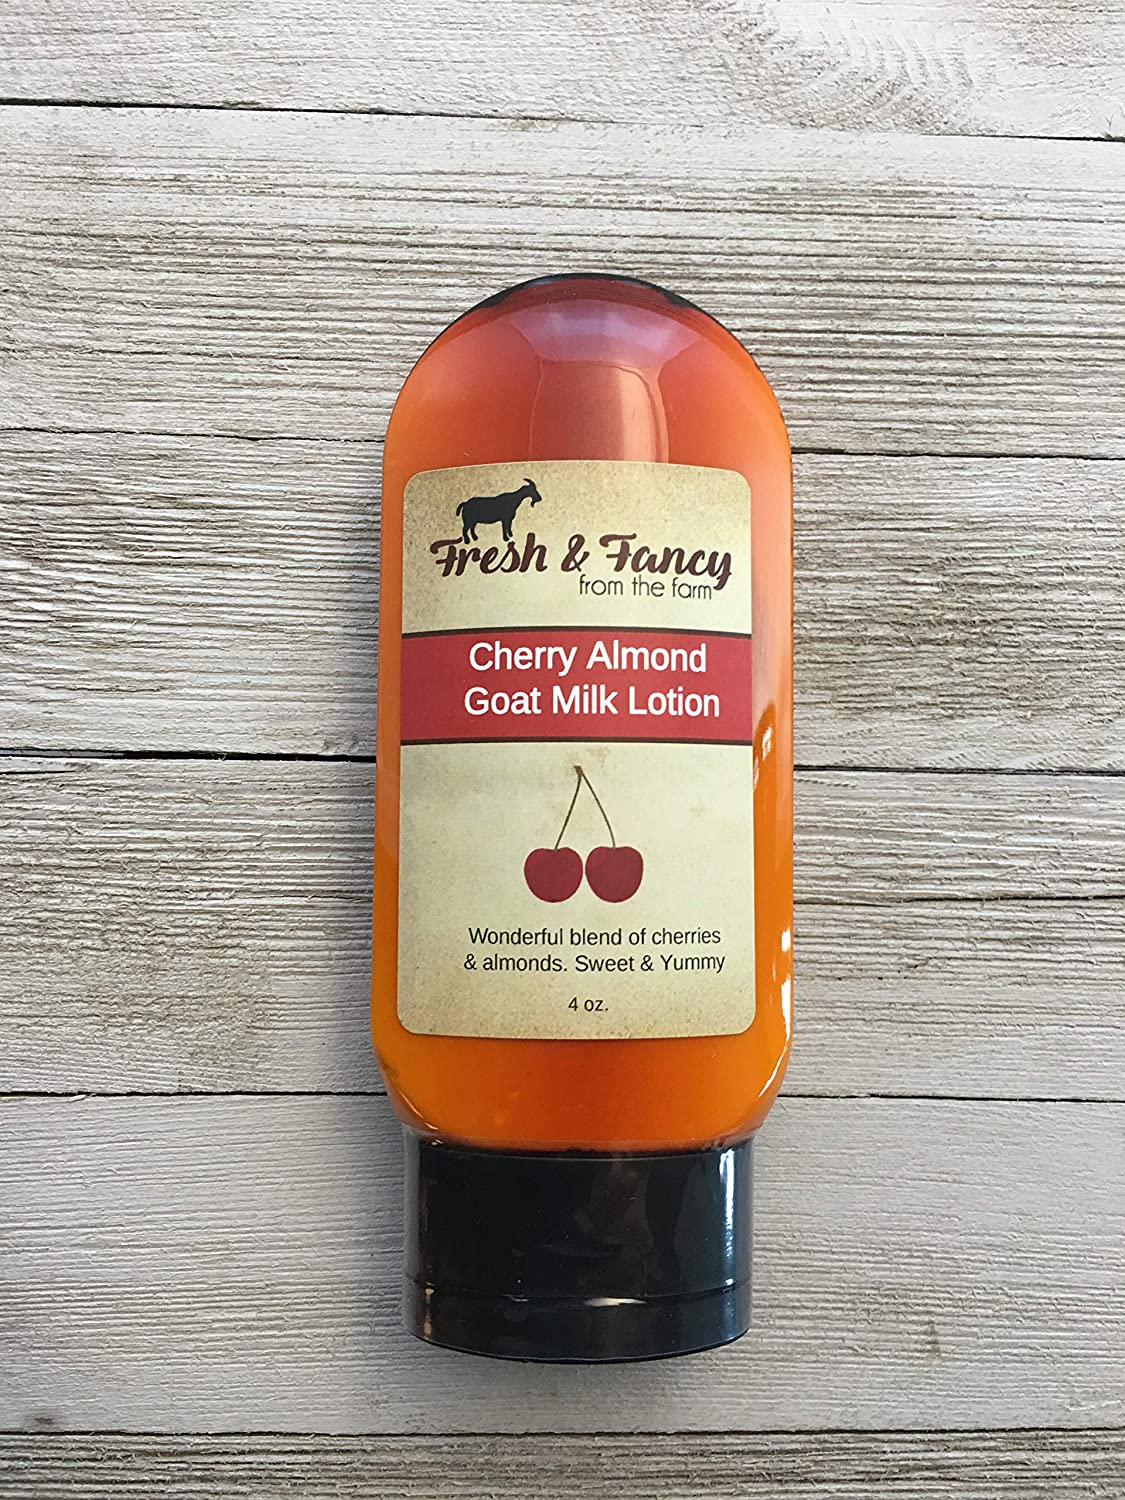 B07DFNVBVW Goat Milk Lotion - Cherry Almond 91DygWnl0hL